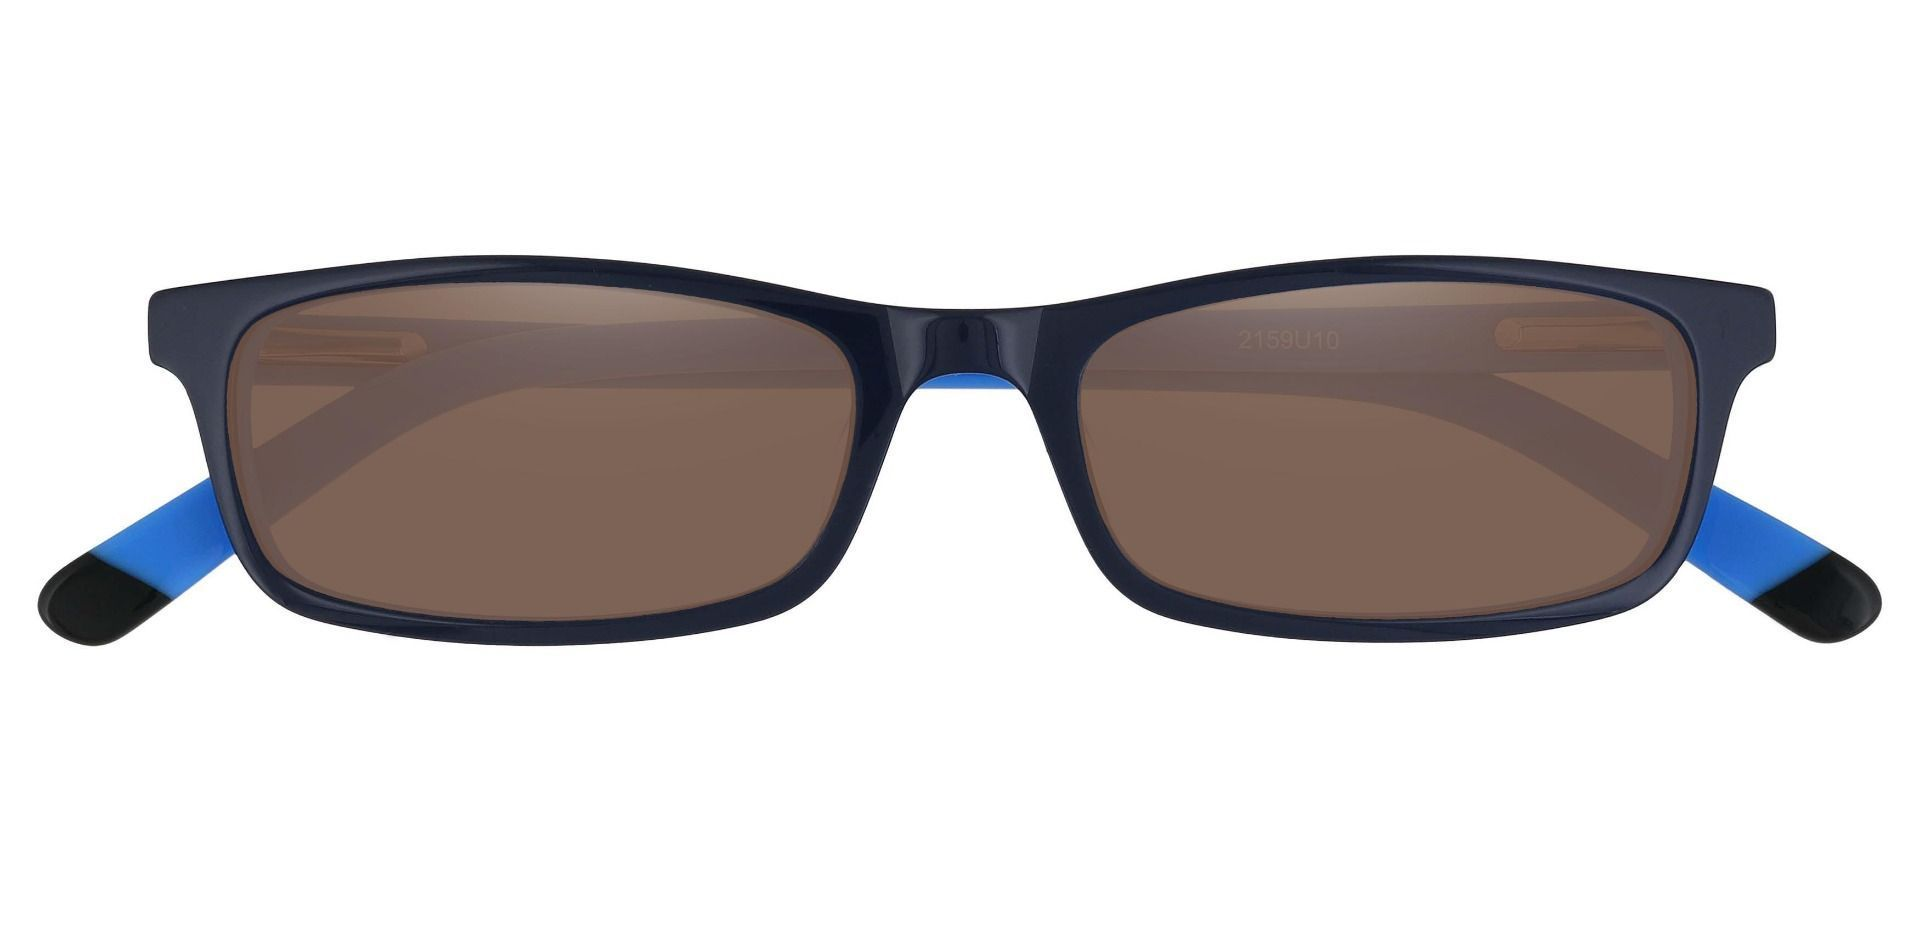 Palisades Rectangle Reading Sunglasses - Blue Frame With Brown Lenses